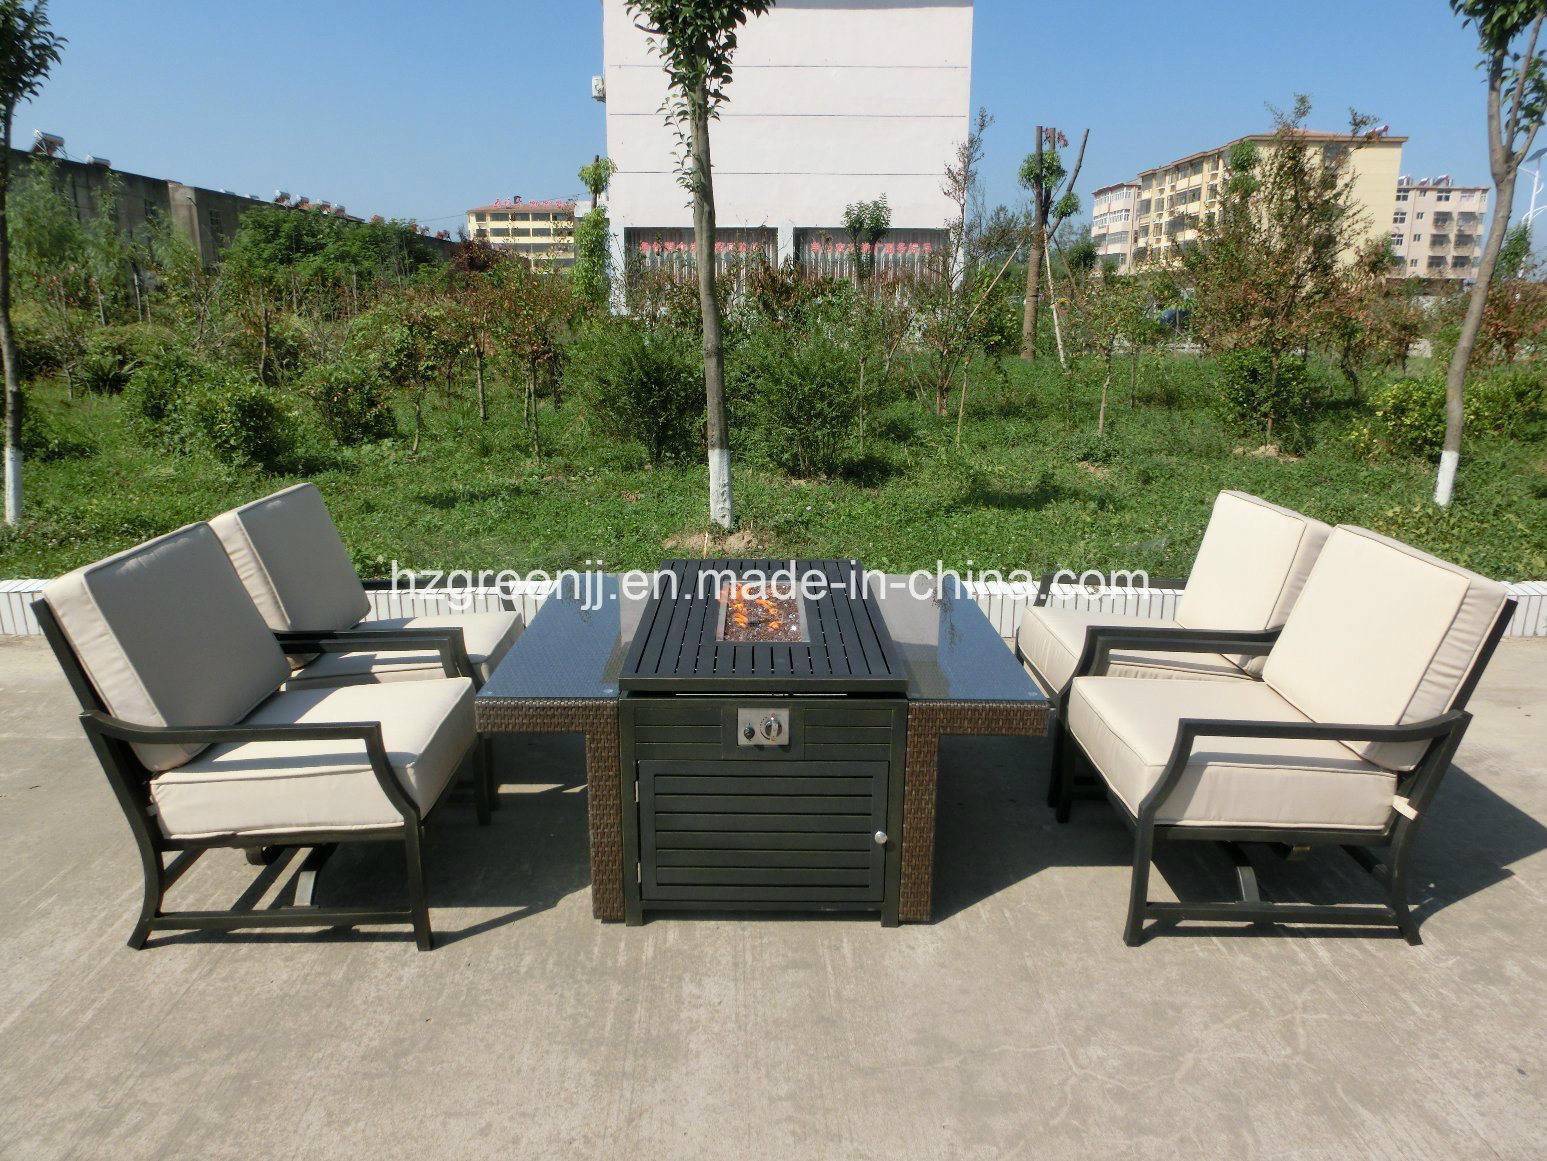 5 Pieces Gas Fire Pit with Swing Chair Wicker Furniture